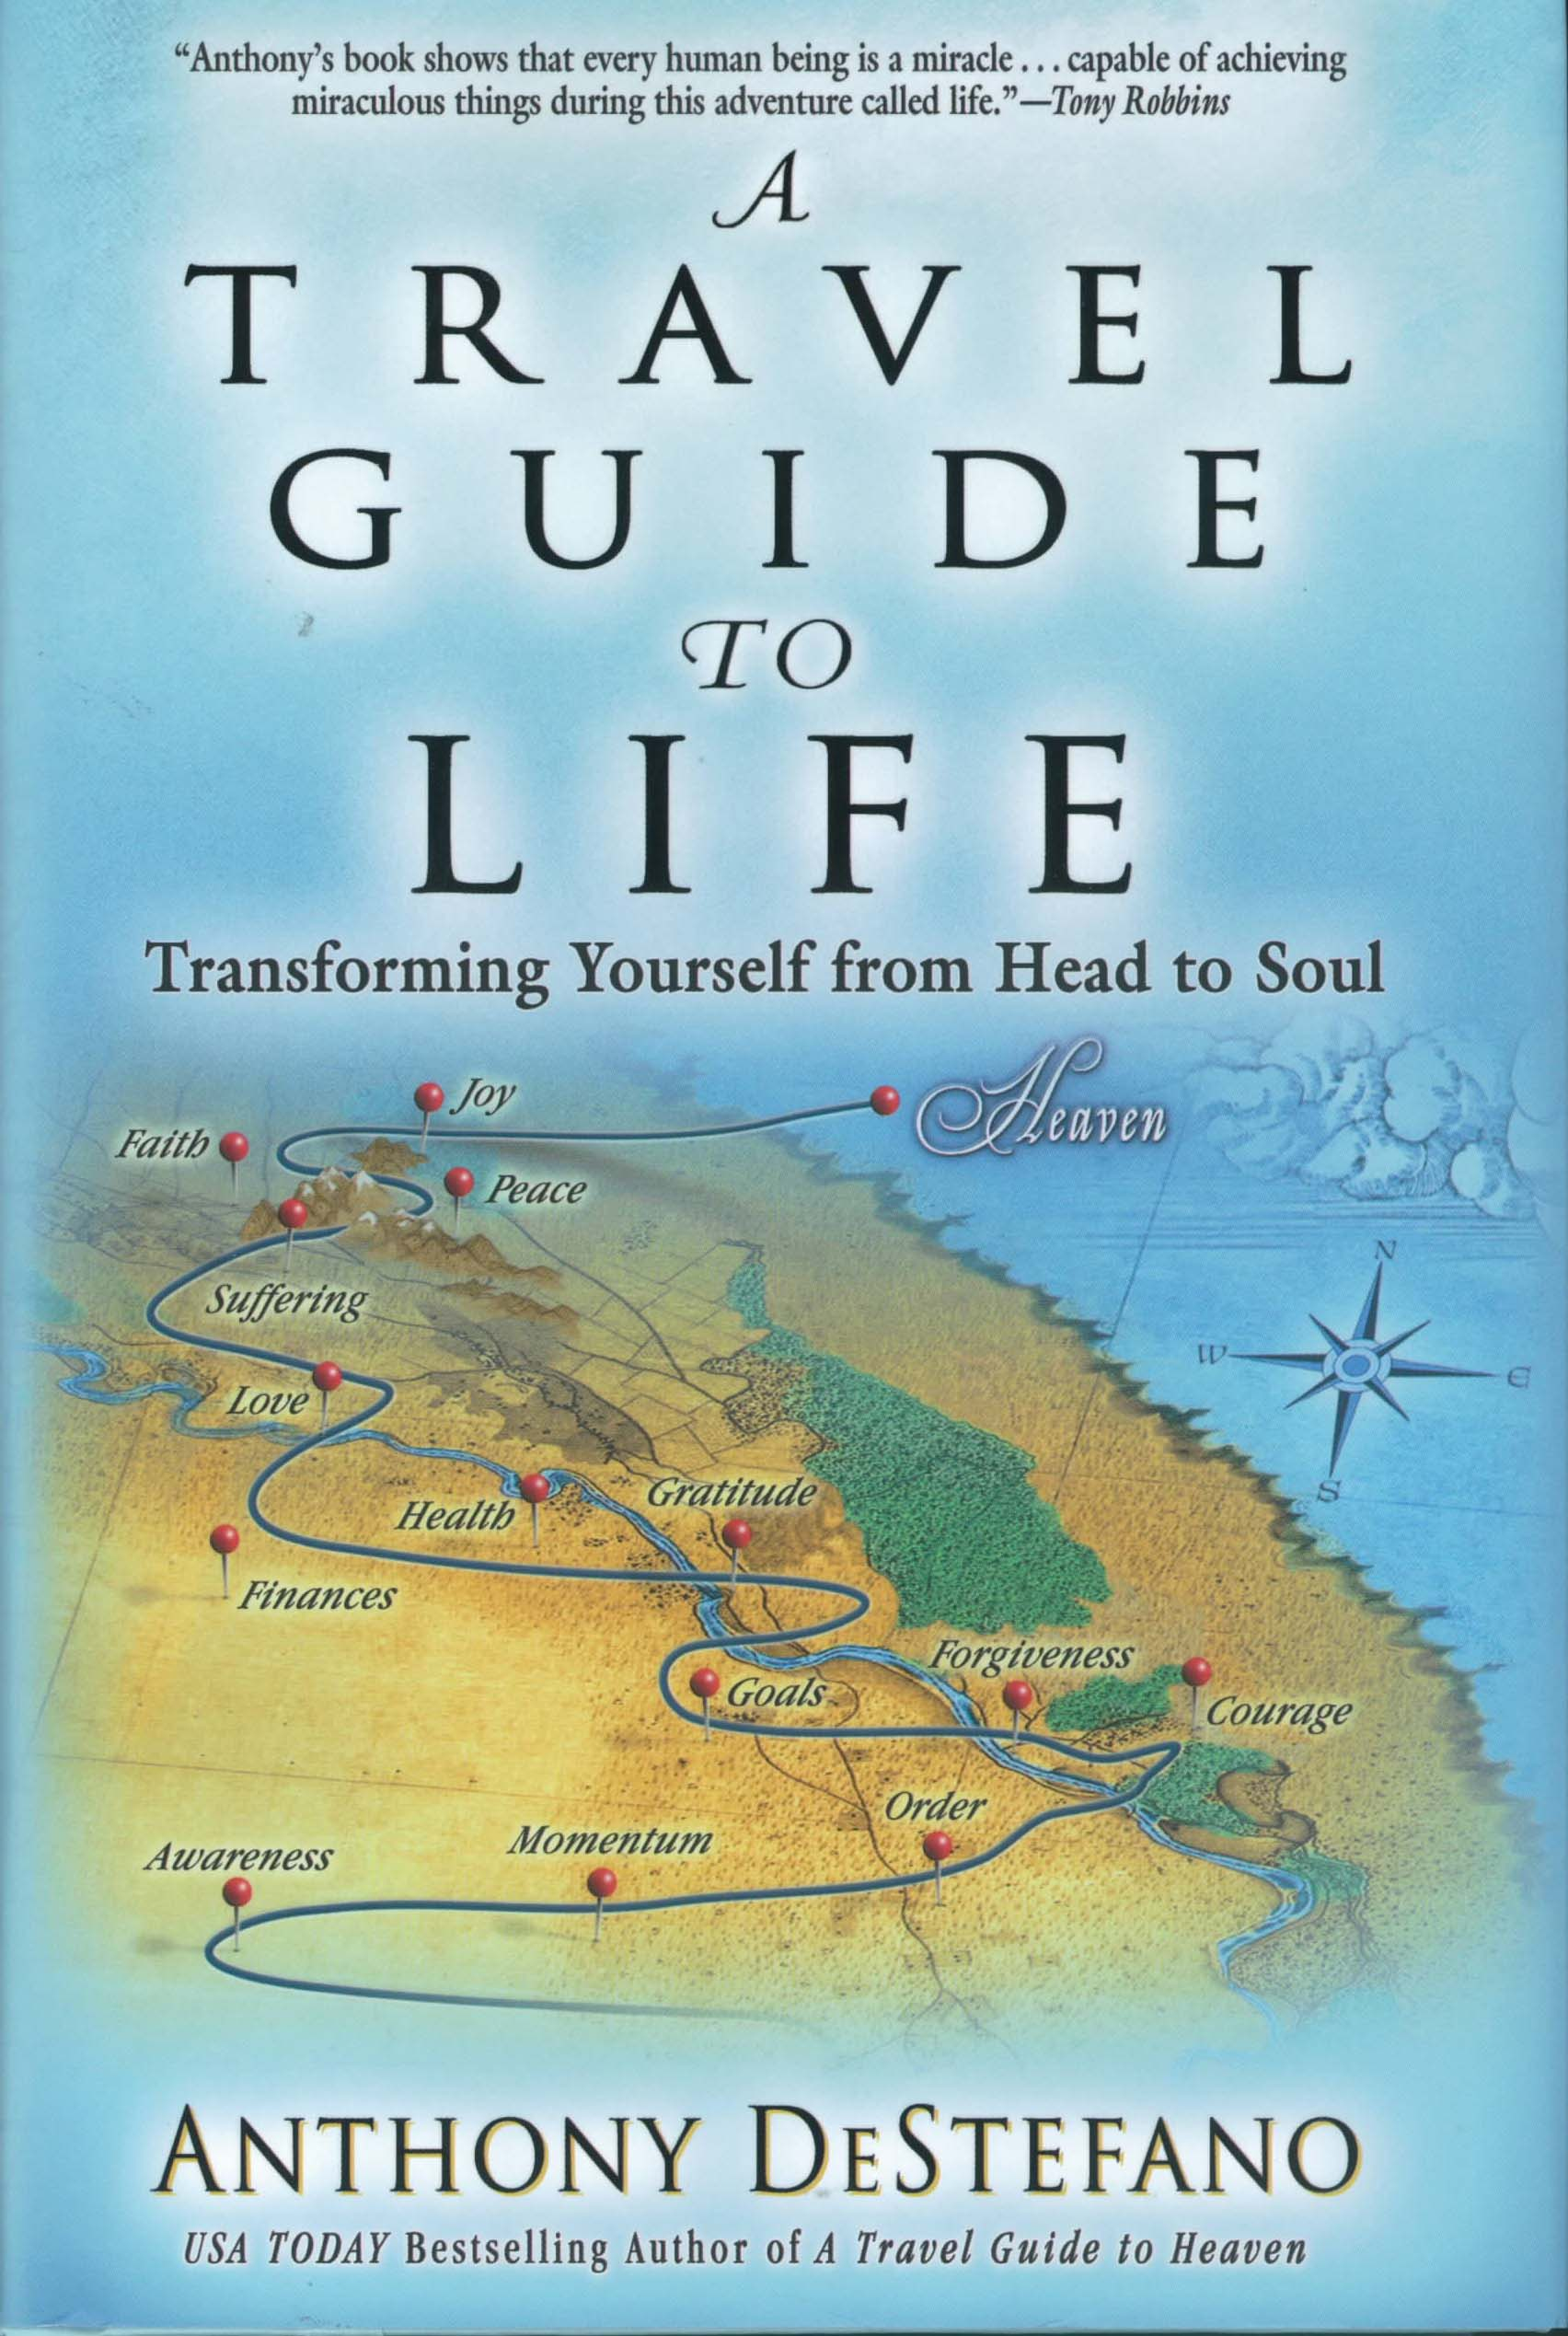 A Travel Guide To Life by Anthony DeStefano 108-9781455521029